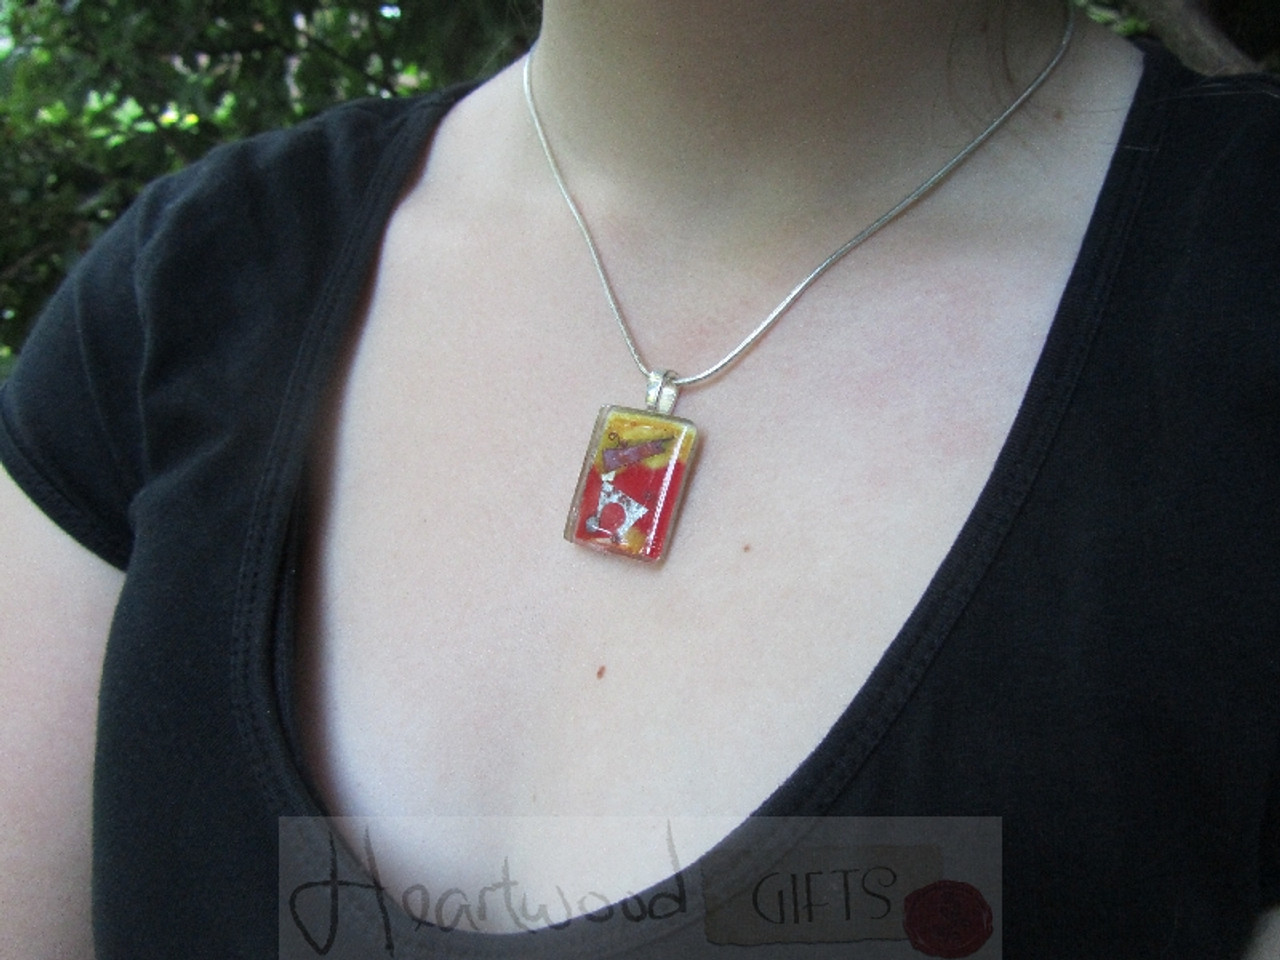 Model with Momo Glassworks Playtime Glass Pendant